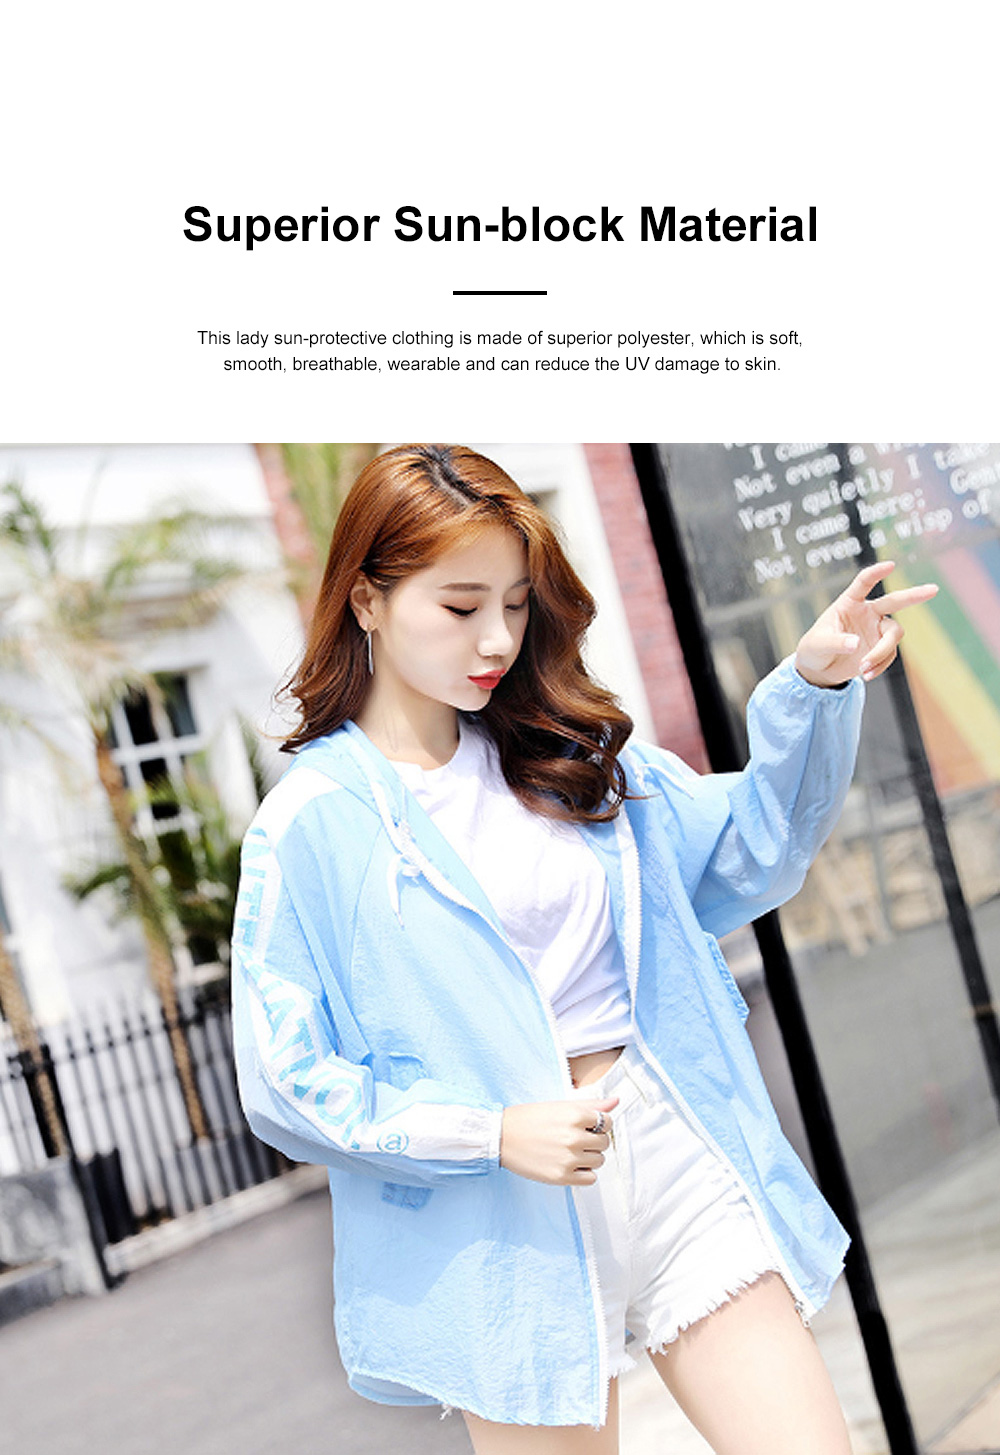 Stylish English Decoration Ultra-thin Sun-protective Clothing, Ultraviolet-Proof Quick Dry Outdoors Coat for Ladies 1